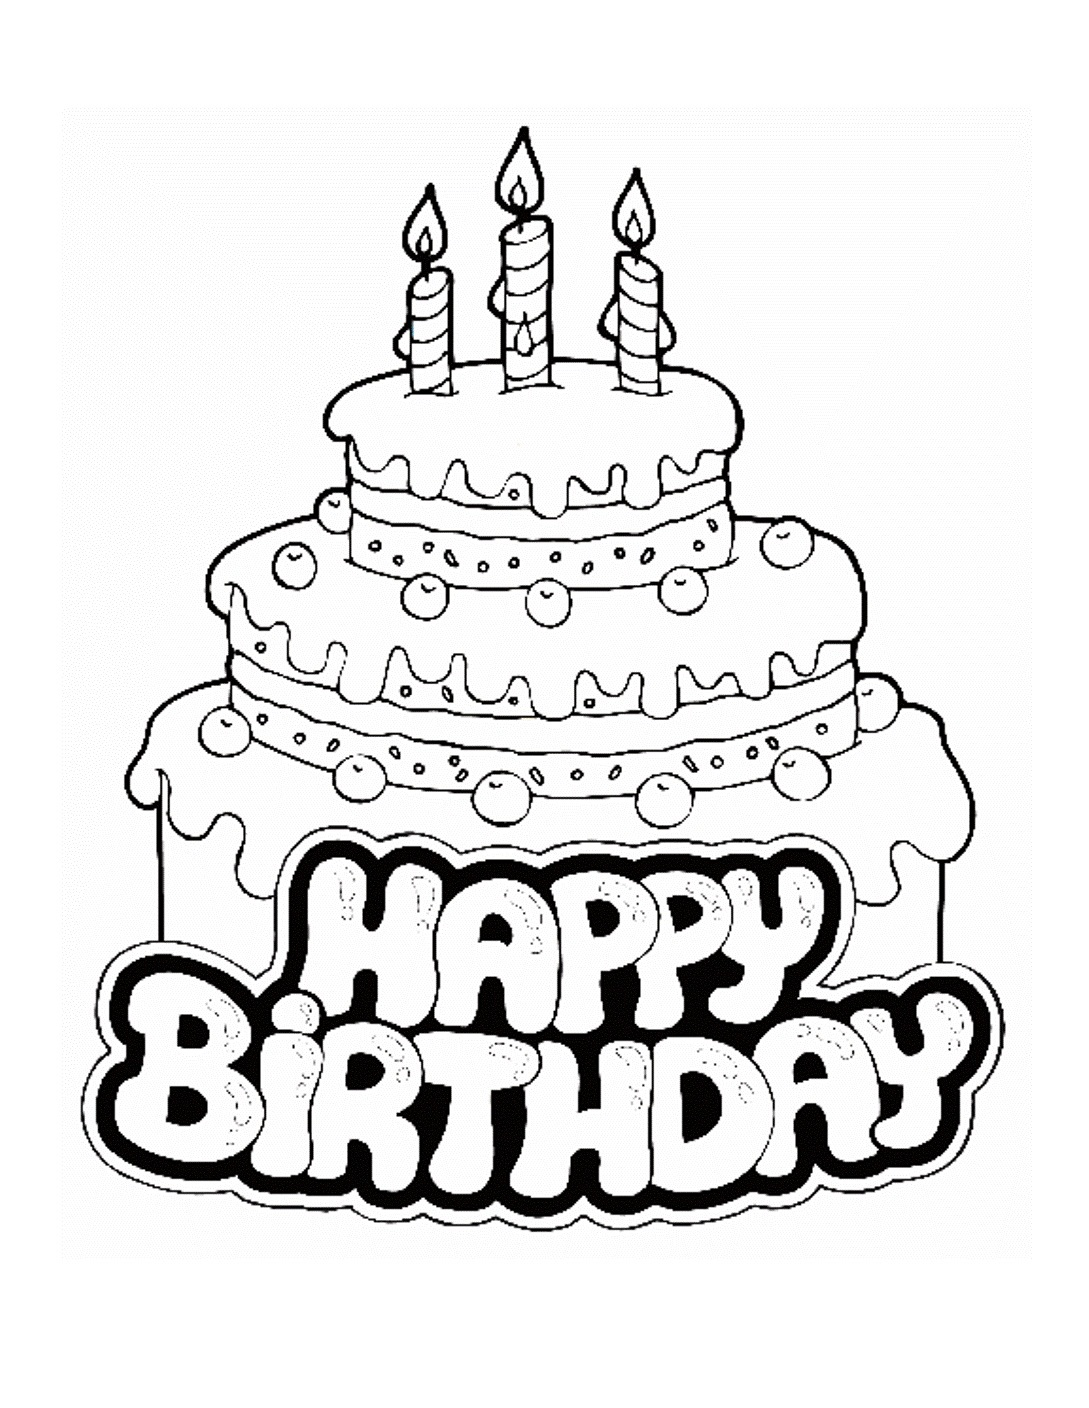 Colouring in birthday cake - Birthday Cake Coloring Pages Printable